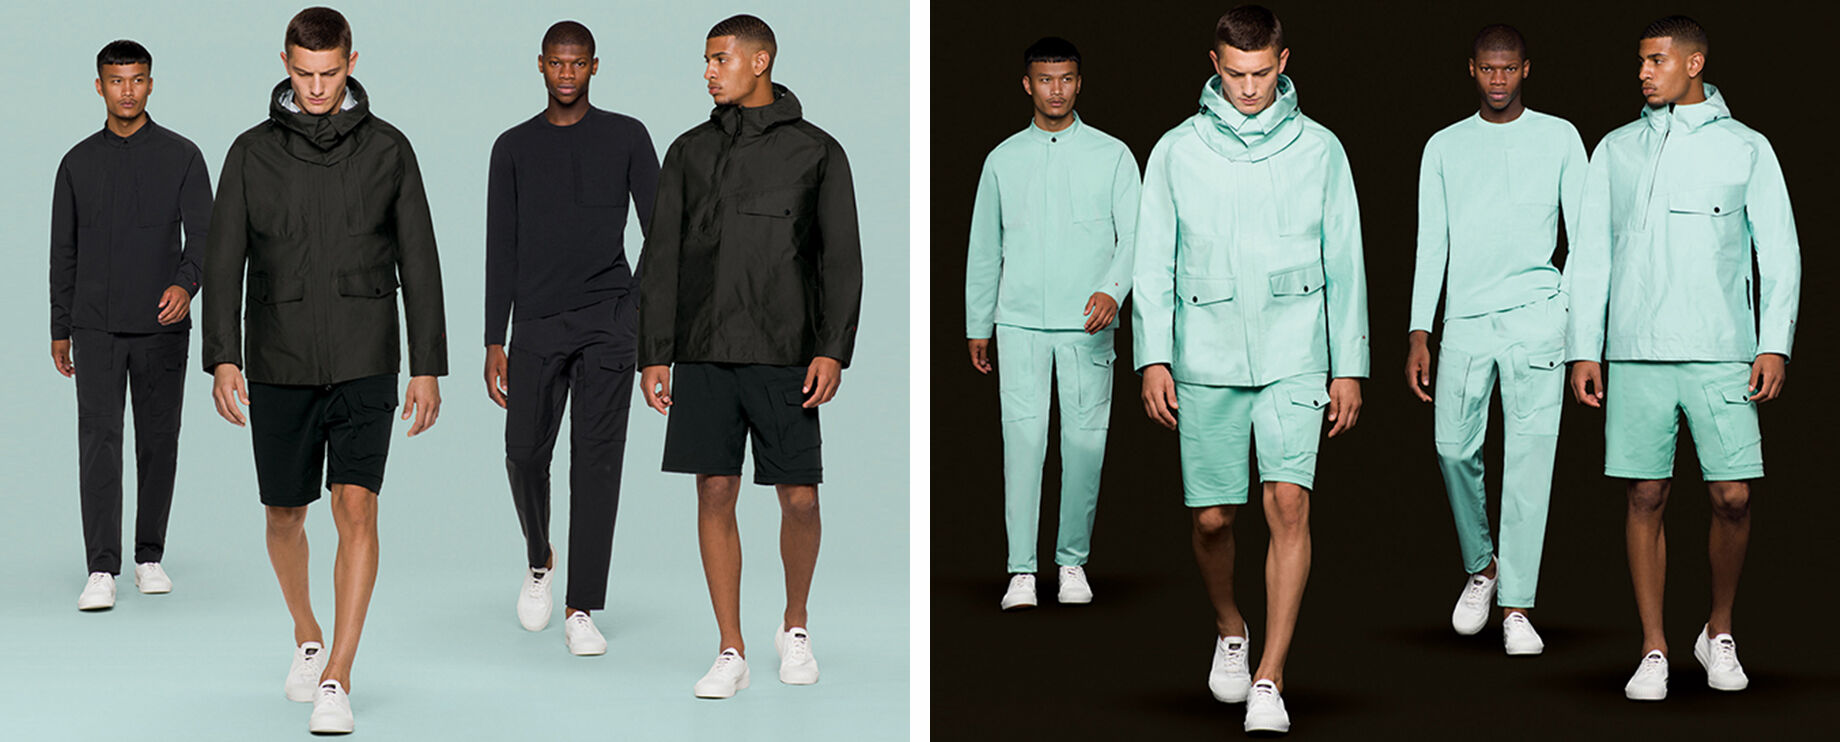 Four models wearing white sneakers and aqua green outfits with different styles of cargo shorts, cargo pants, sweatshirts and jackets next there are four models wearing white sneakers and black outfits with different styles of cargo shorts, cargo pants, s